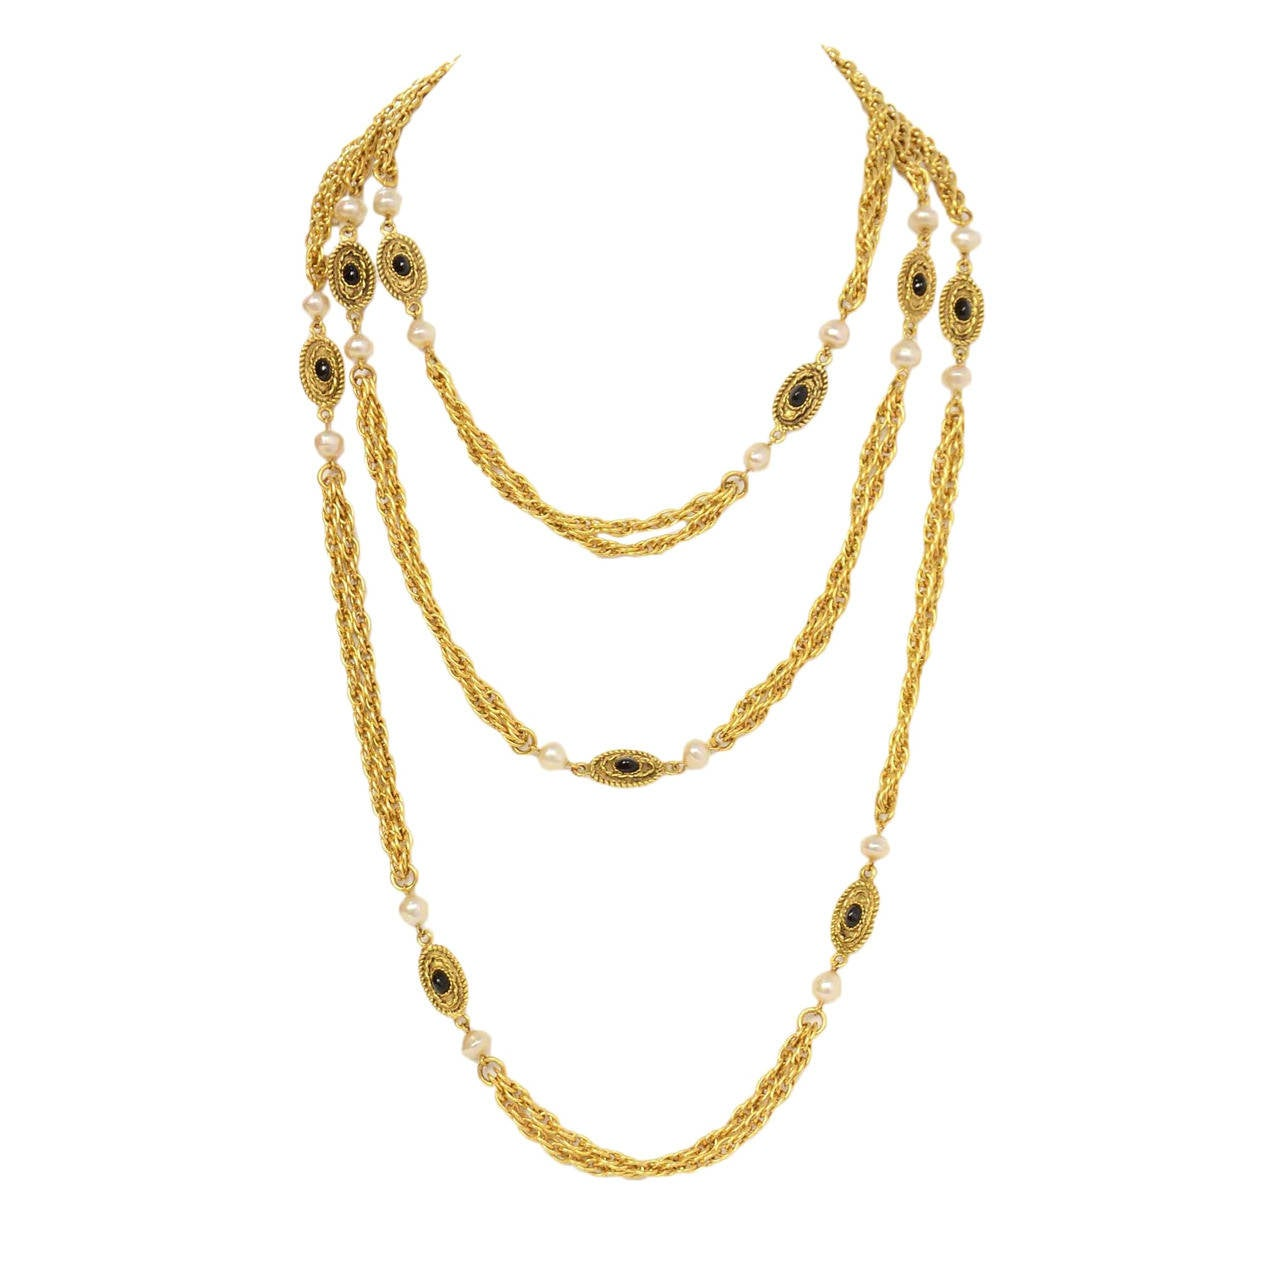 Chanel Vintage '82 Pearl & Black Beaded Chain Link Necklace Features little intricate pendants with black beading throughout  Made in: France Year of Production: 1982 Stamp: MADE IN FRANCE Closure: Push clasp closure Color: Gold, black, and